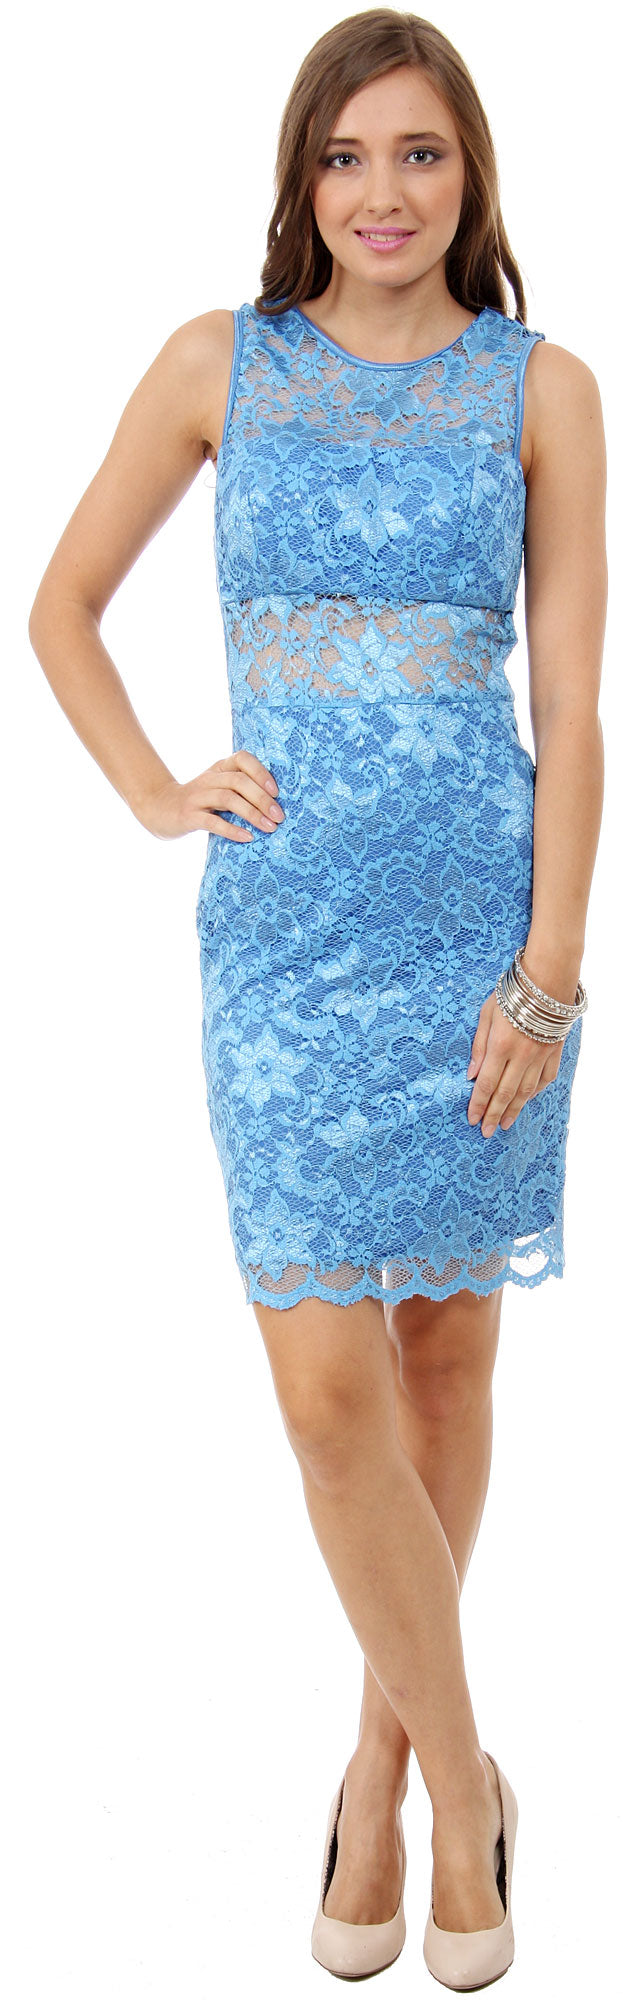 Image of Floral Lace Cutout Short Bridesmaid Party Dress in Periwinkle